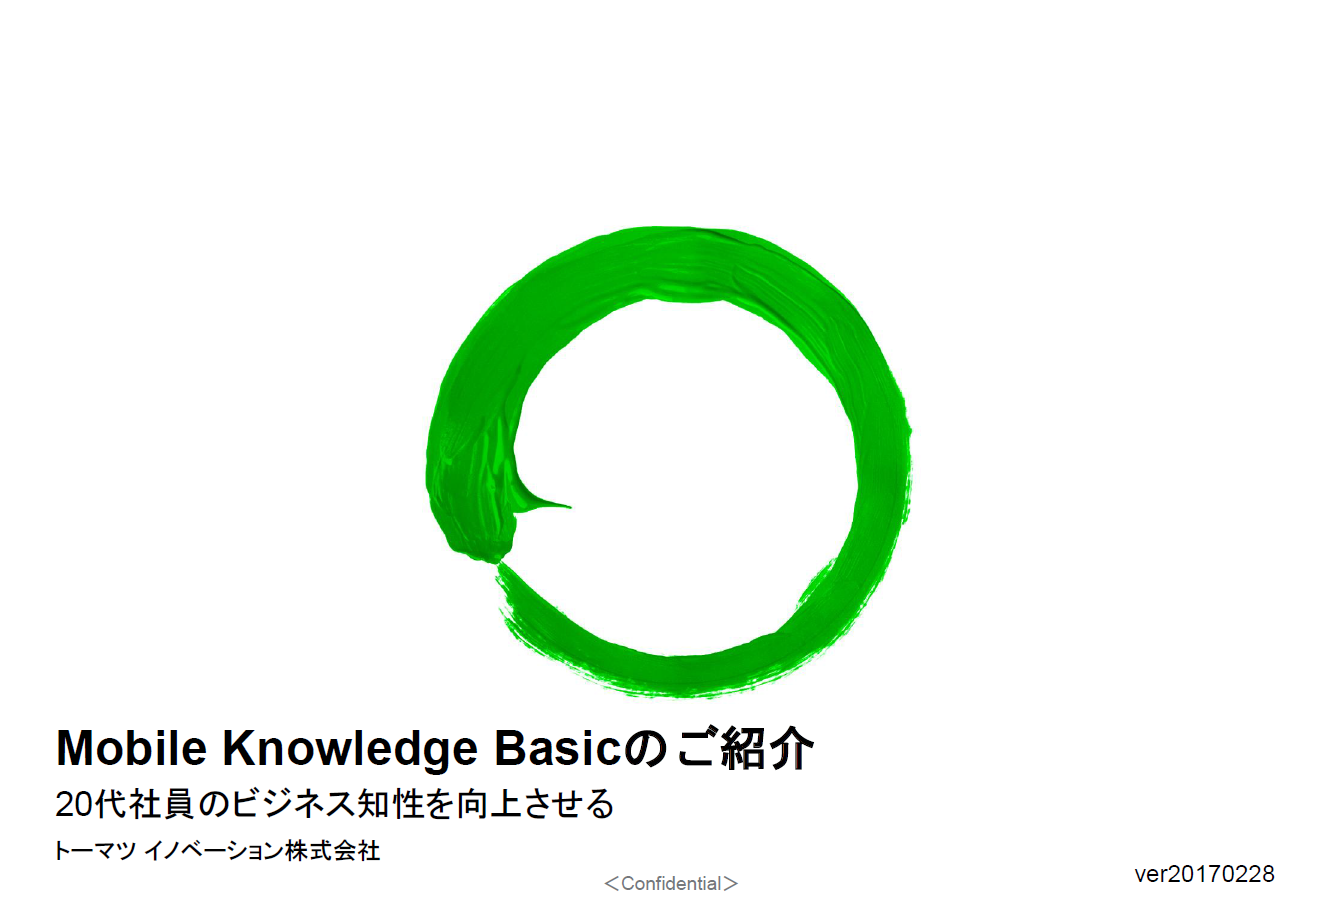 Mobile Knowledge Basic